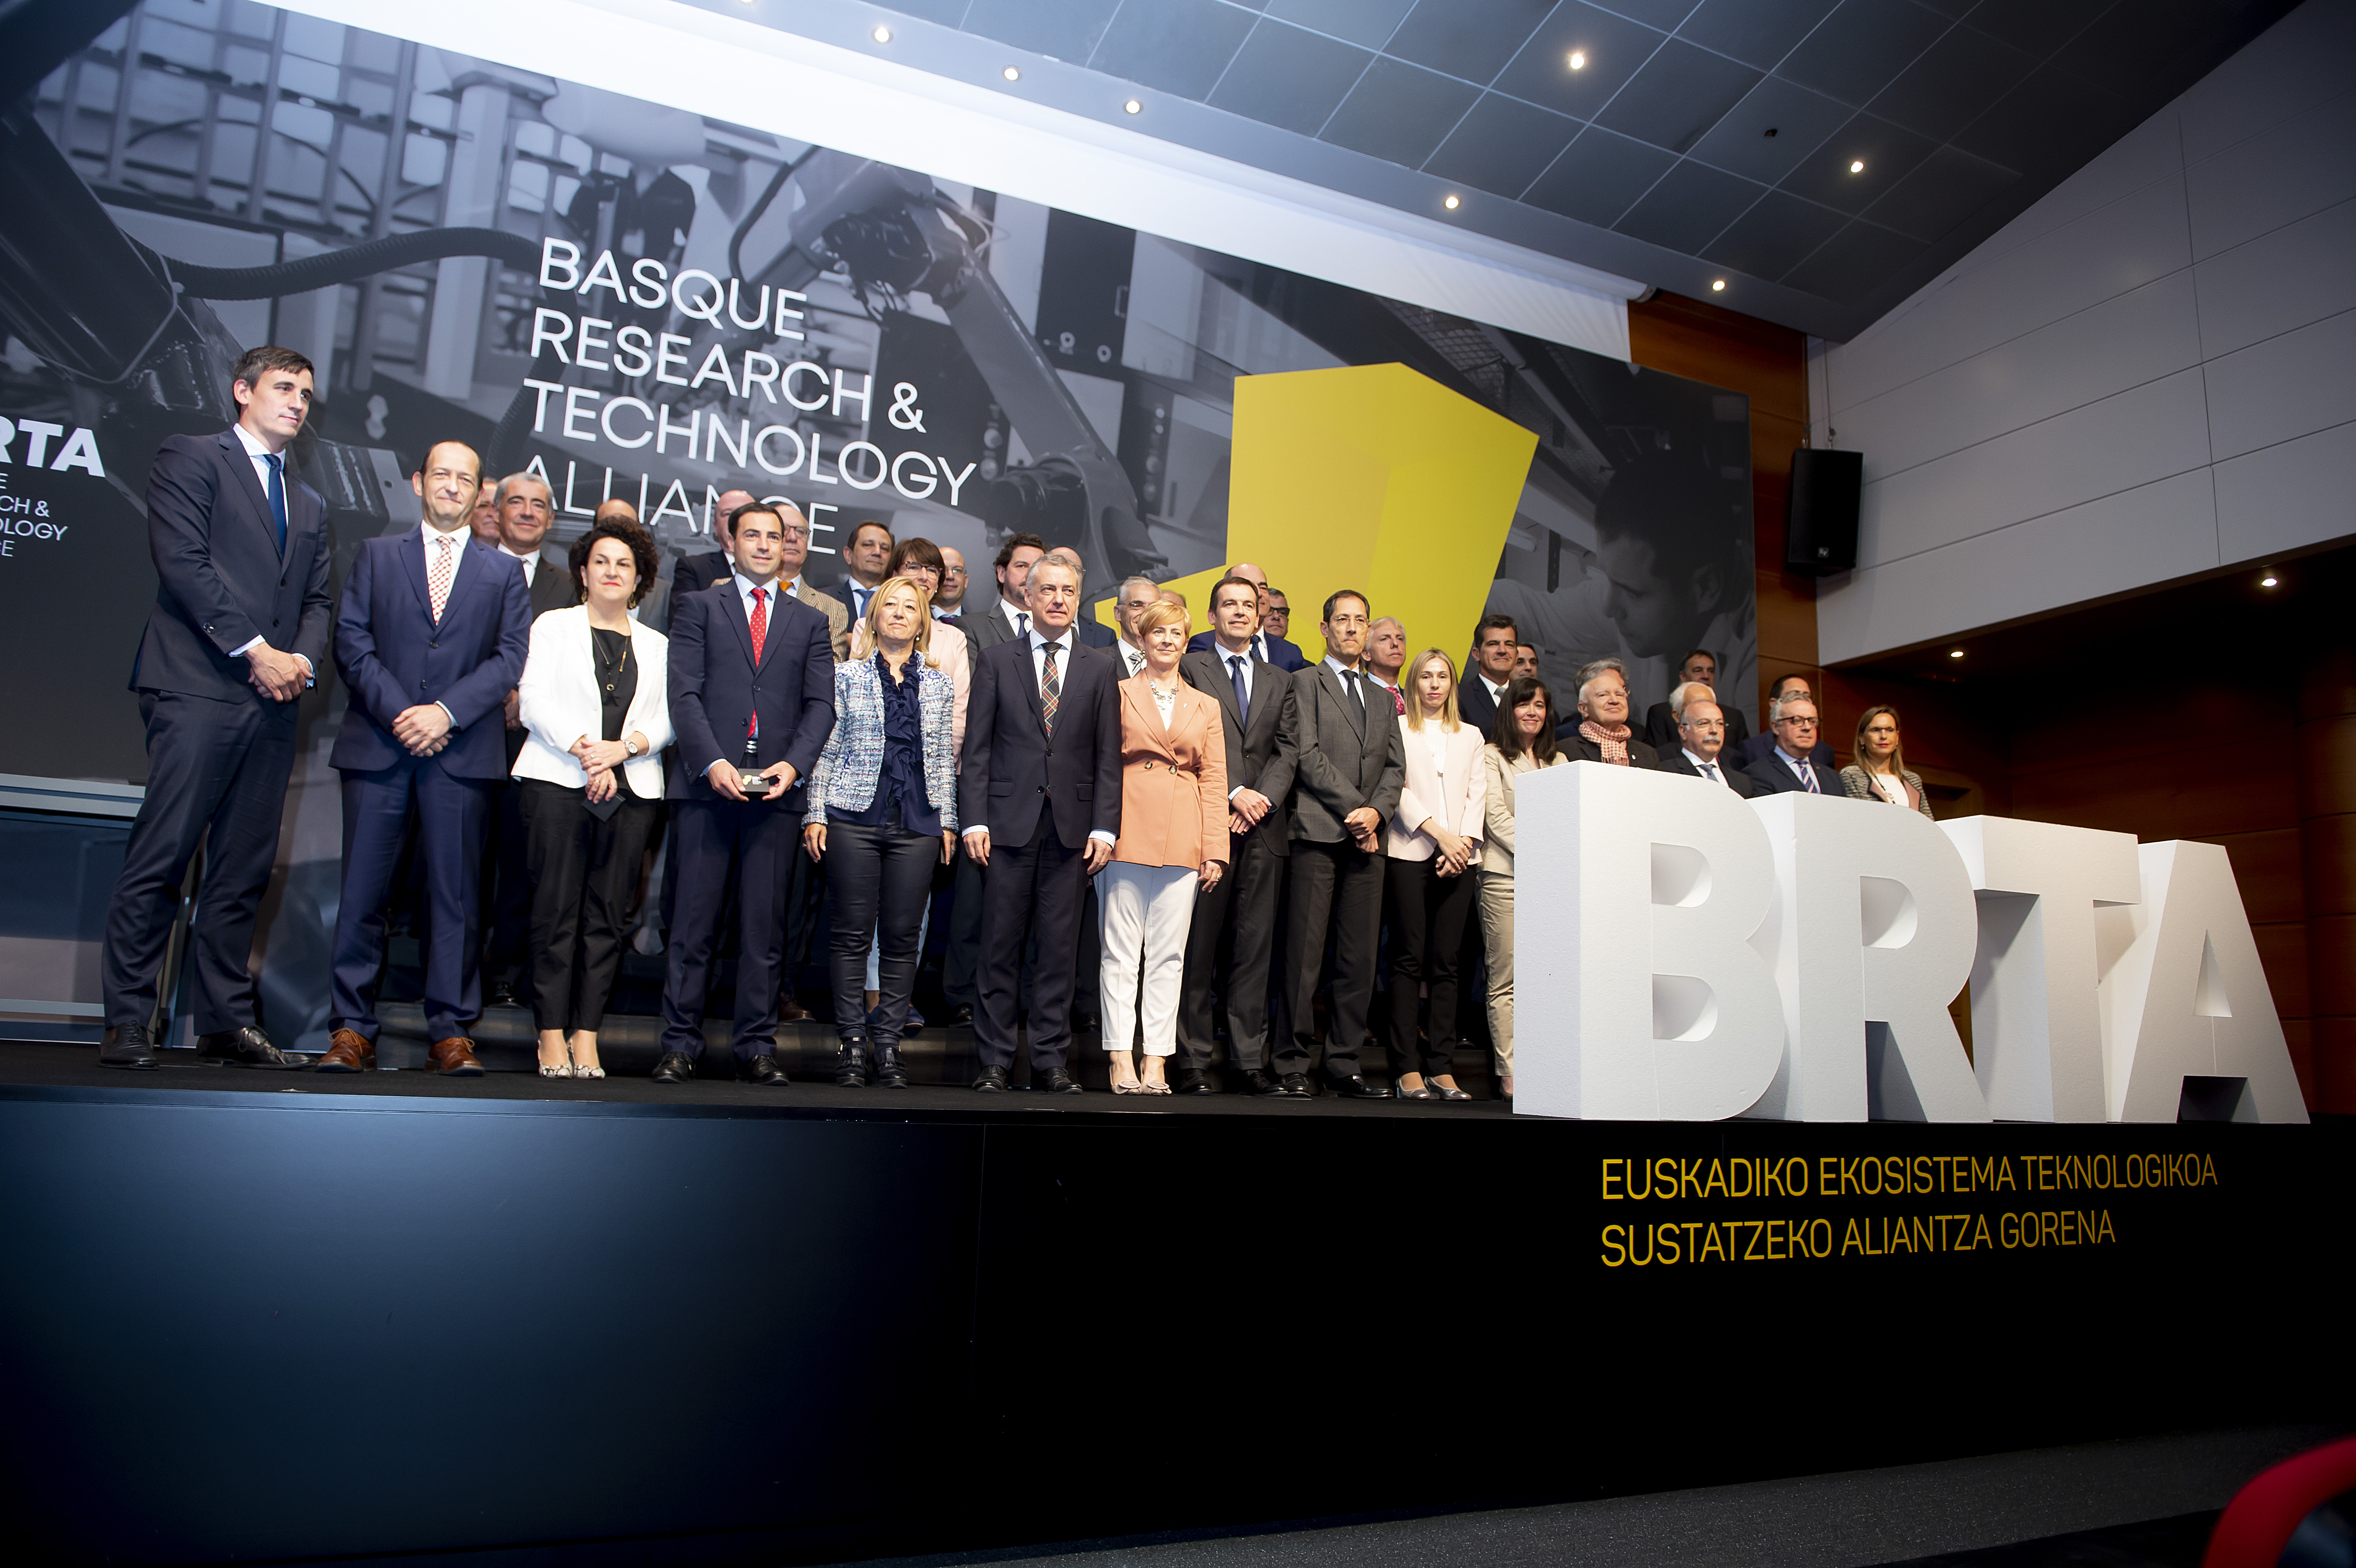 The Basque Government unveils the BRTA, Basque Research and Technology Alliance